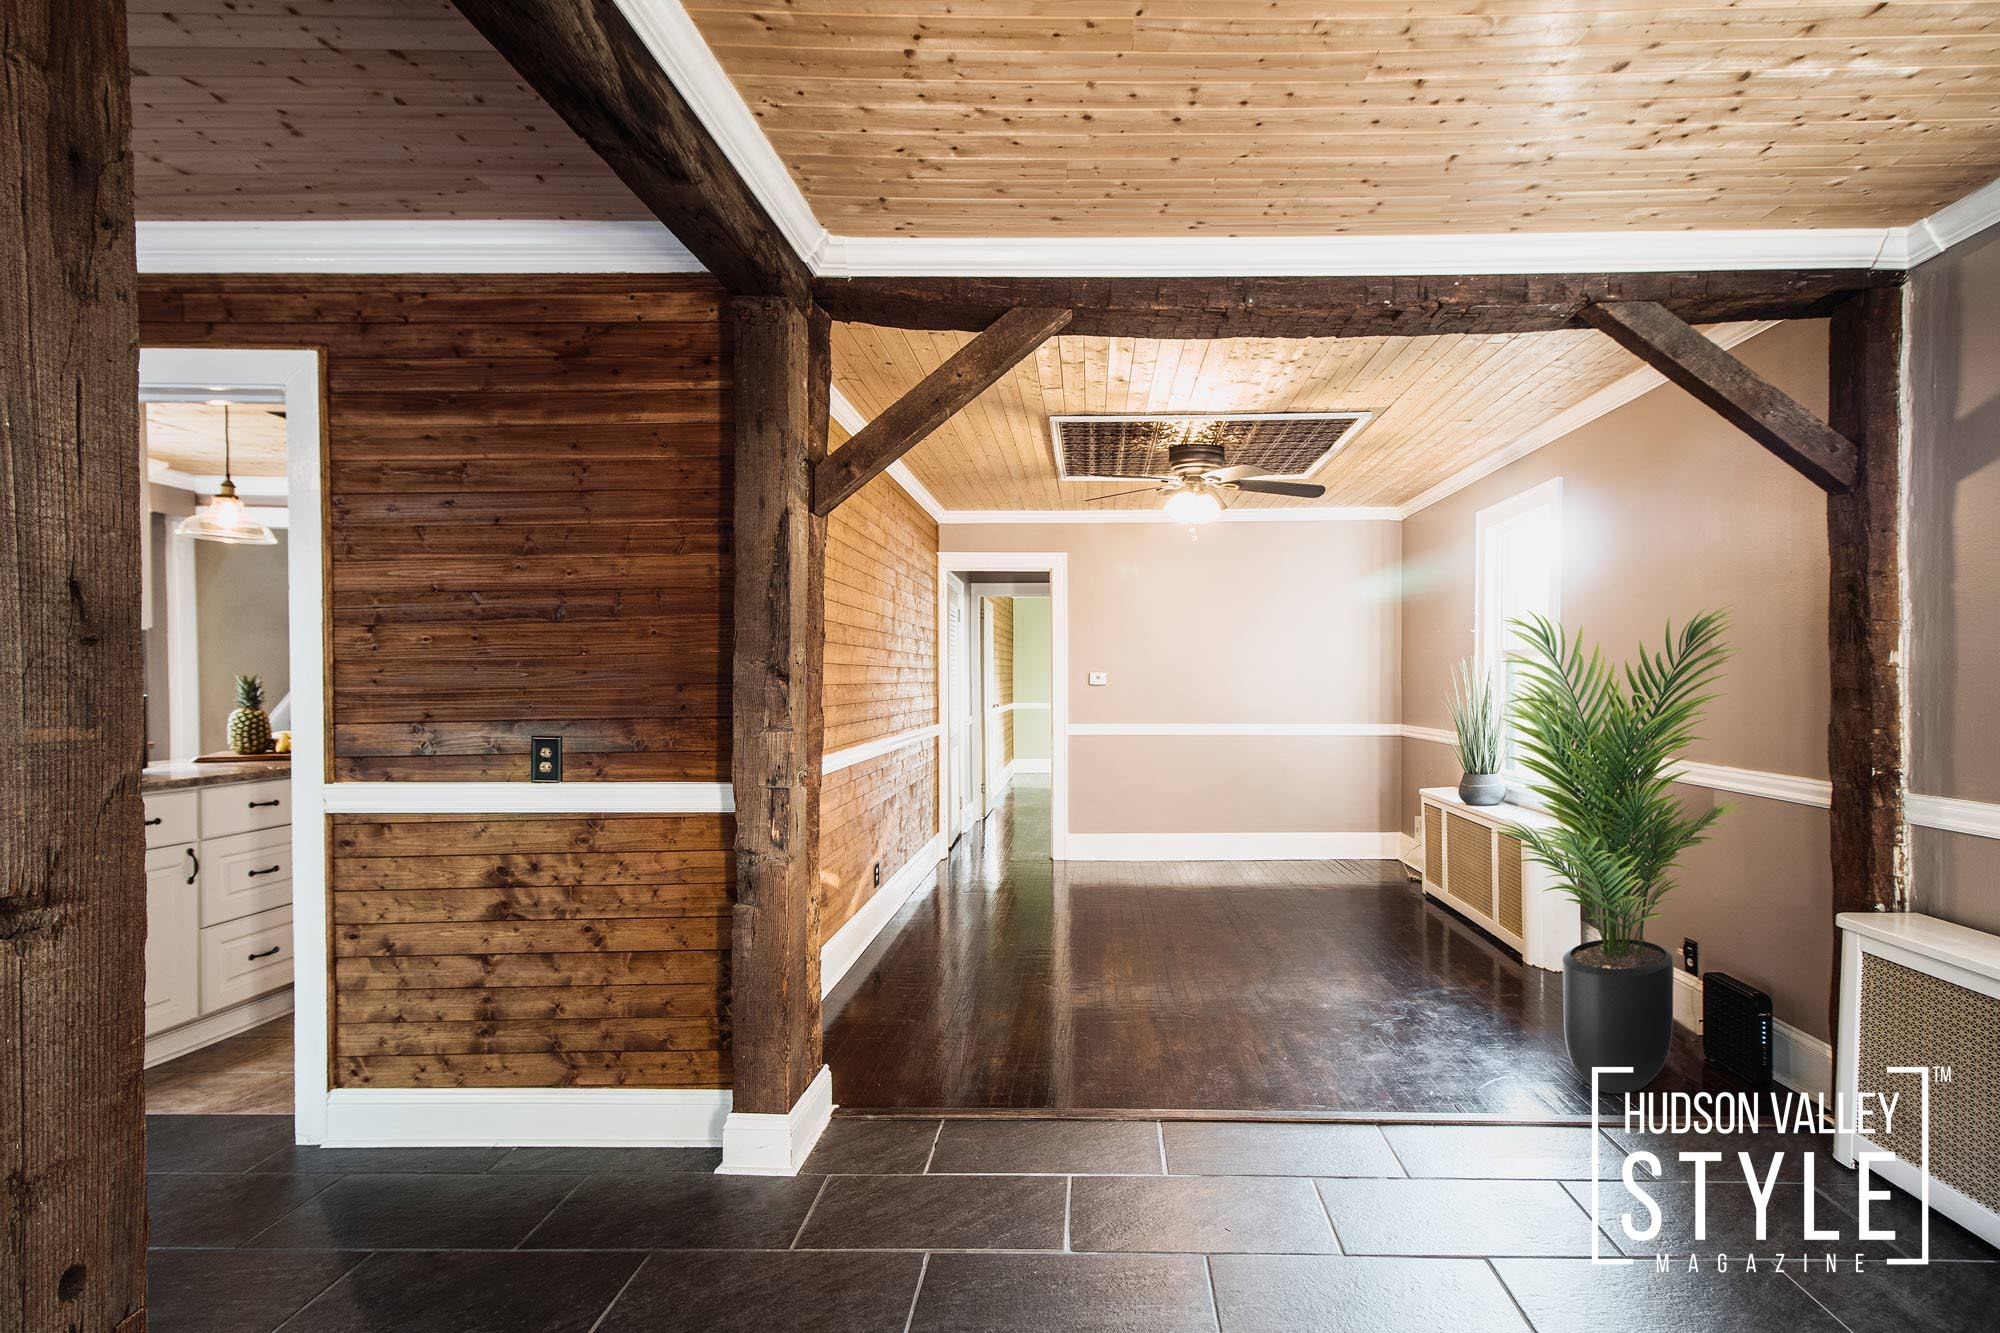 Hudson Valley Home for Sale in Newburgh, NY - Alexander Maxwell Realty - Dino Alexander